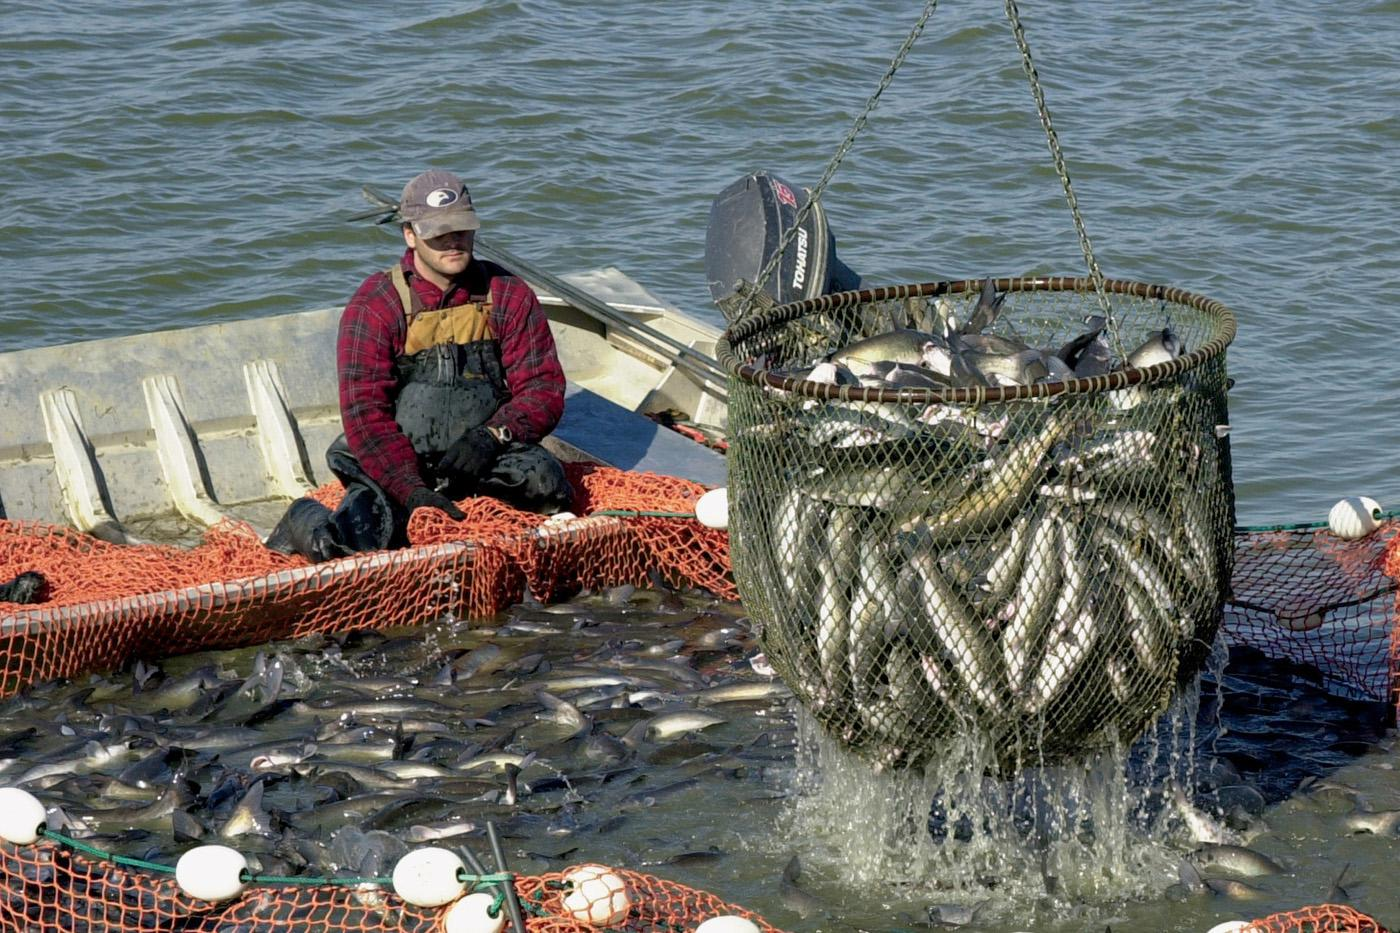 U.S. farm-raised catfish are being netted out for harvest from this Mississippi pond. The state's catfish industry is facing obstacles from very high feed prices, declining acreage and imported fish. (Photo by Marco Nicovich)